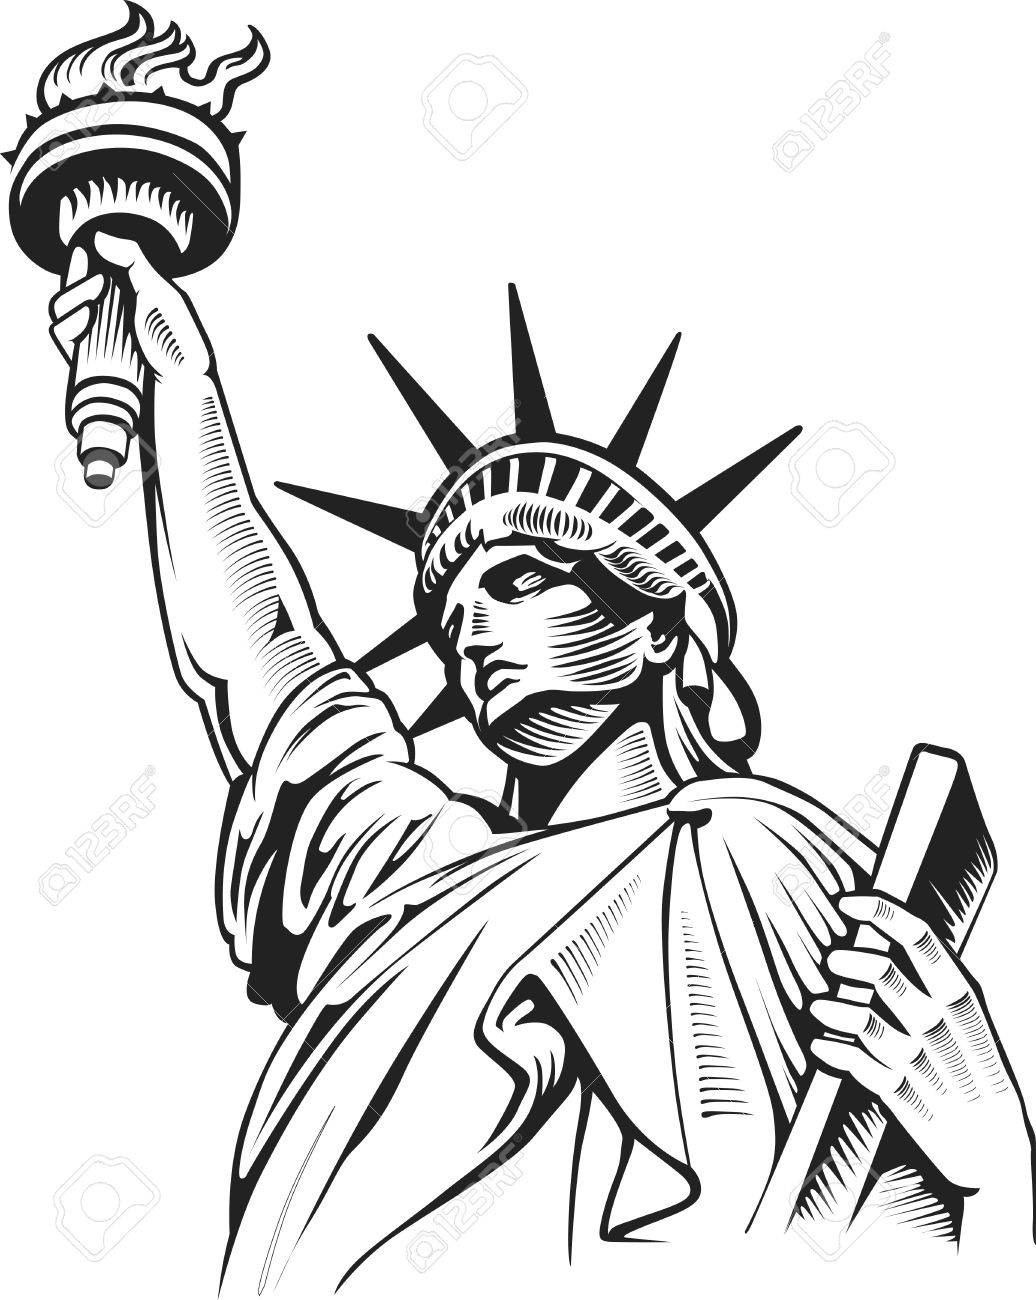 1036x1300 Liberty Statue, New York, Usa Royalty Free Cliparts, Vectors,